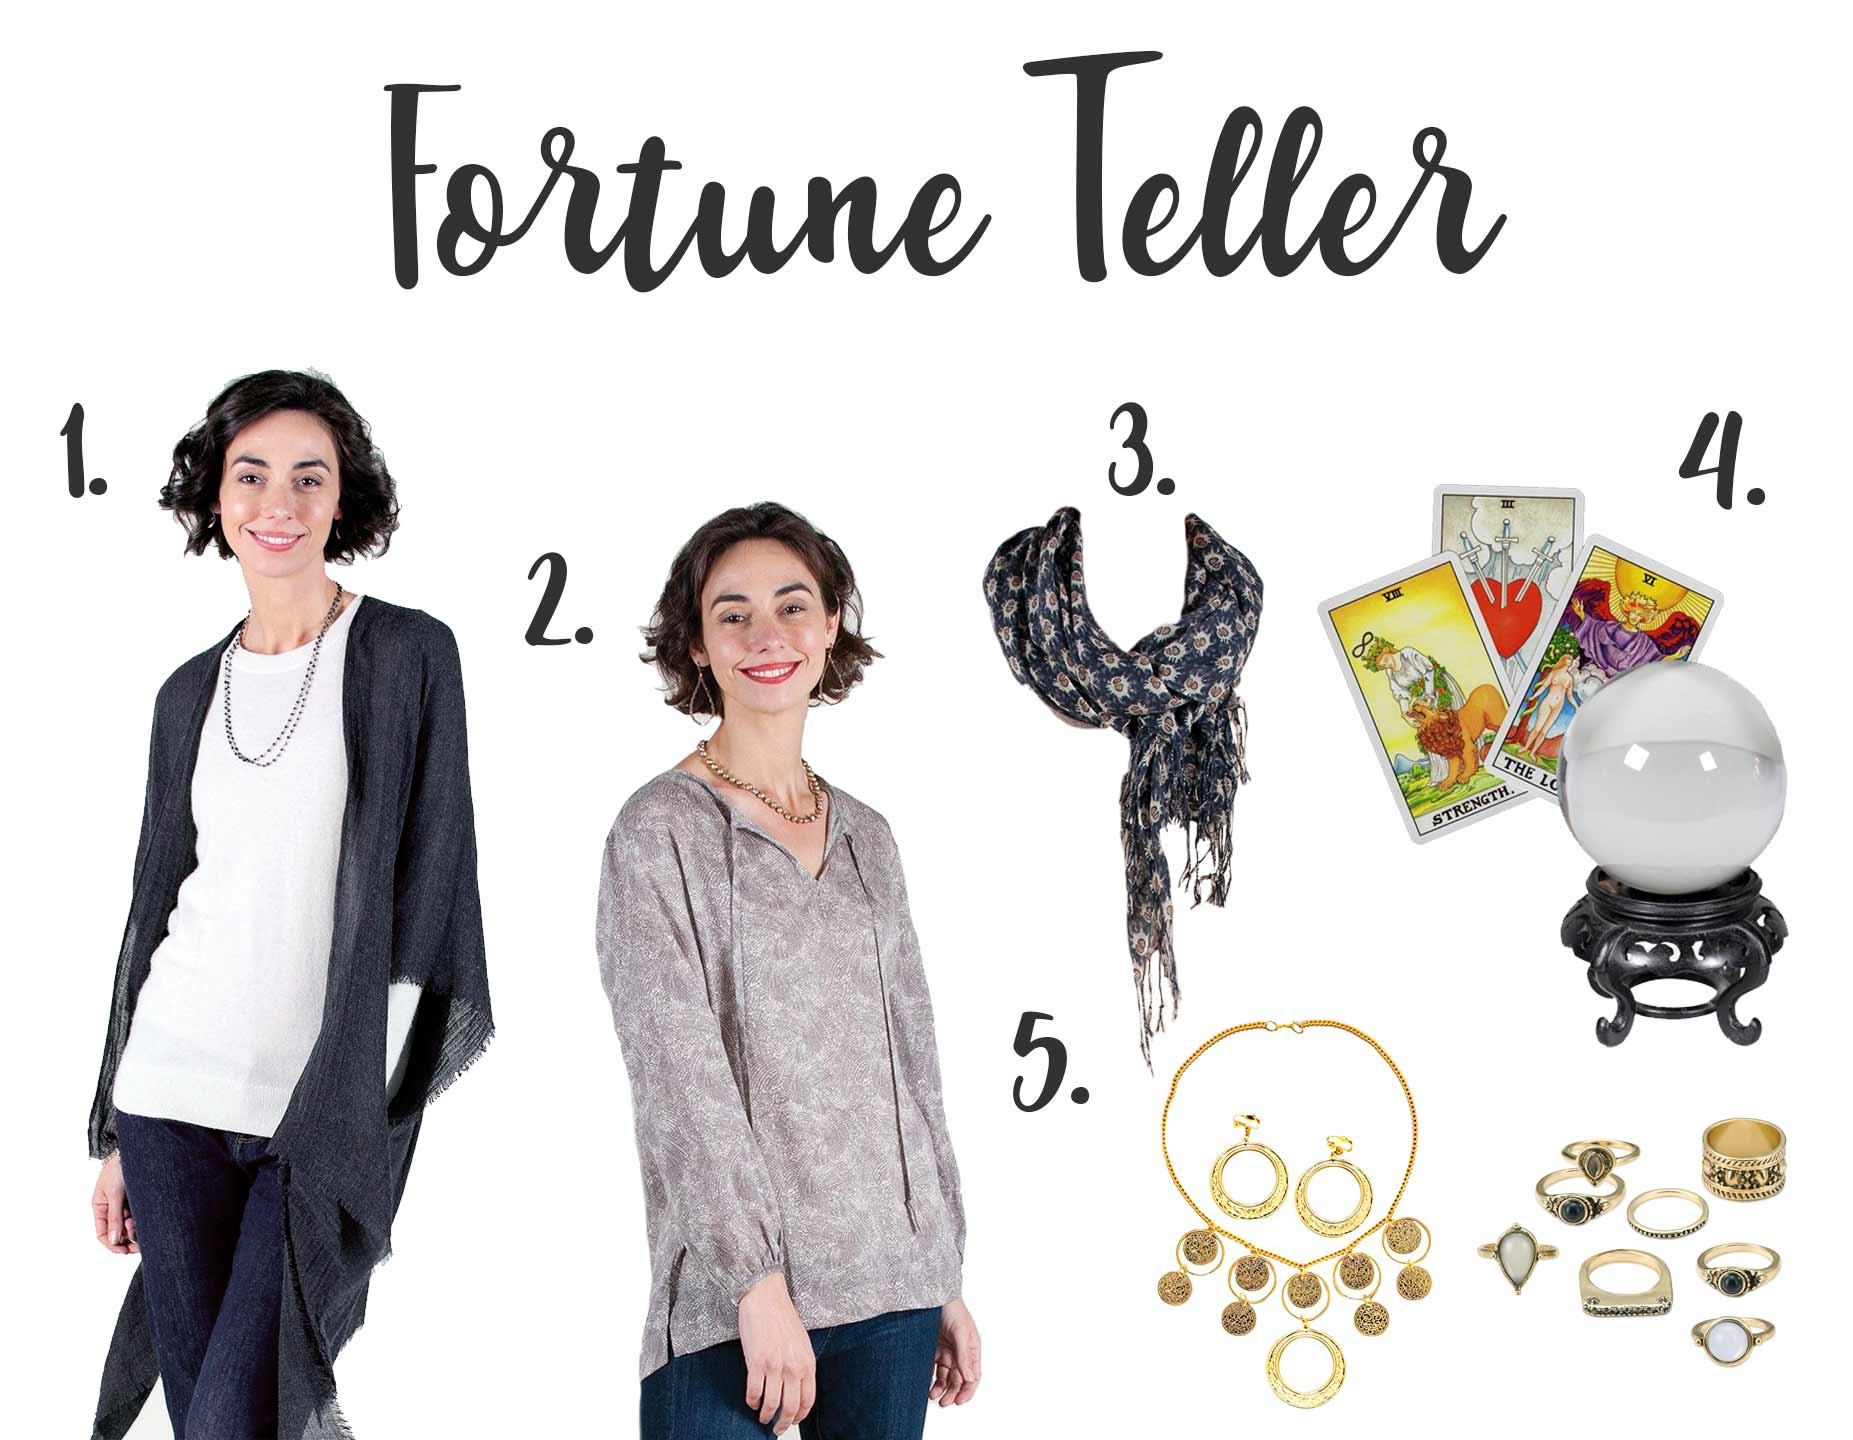 fortune teller halloween costume using black fringe kimono, grey peasant blouse, and black scarf